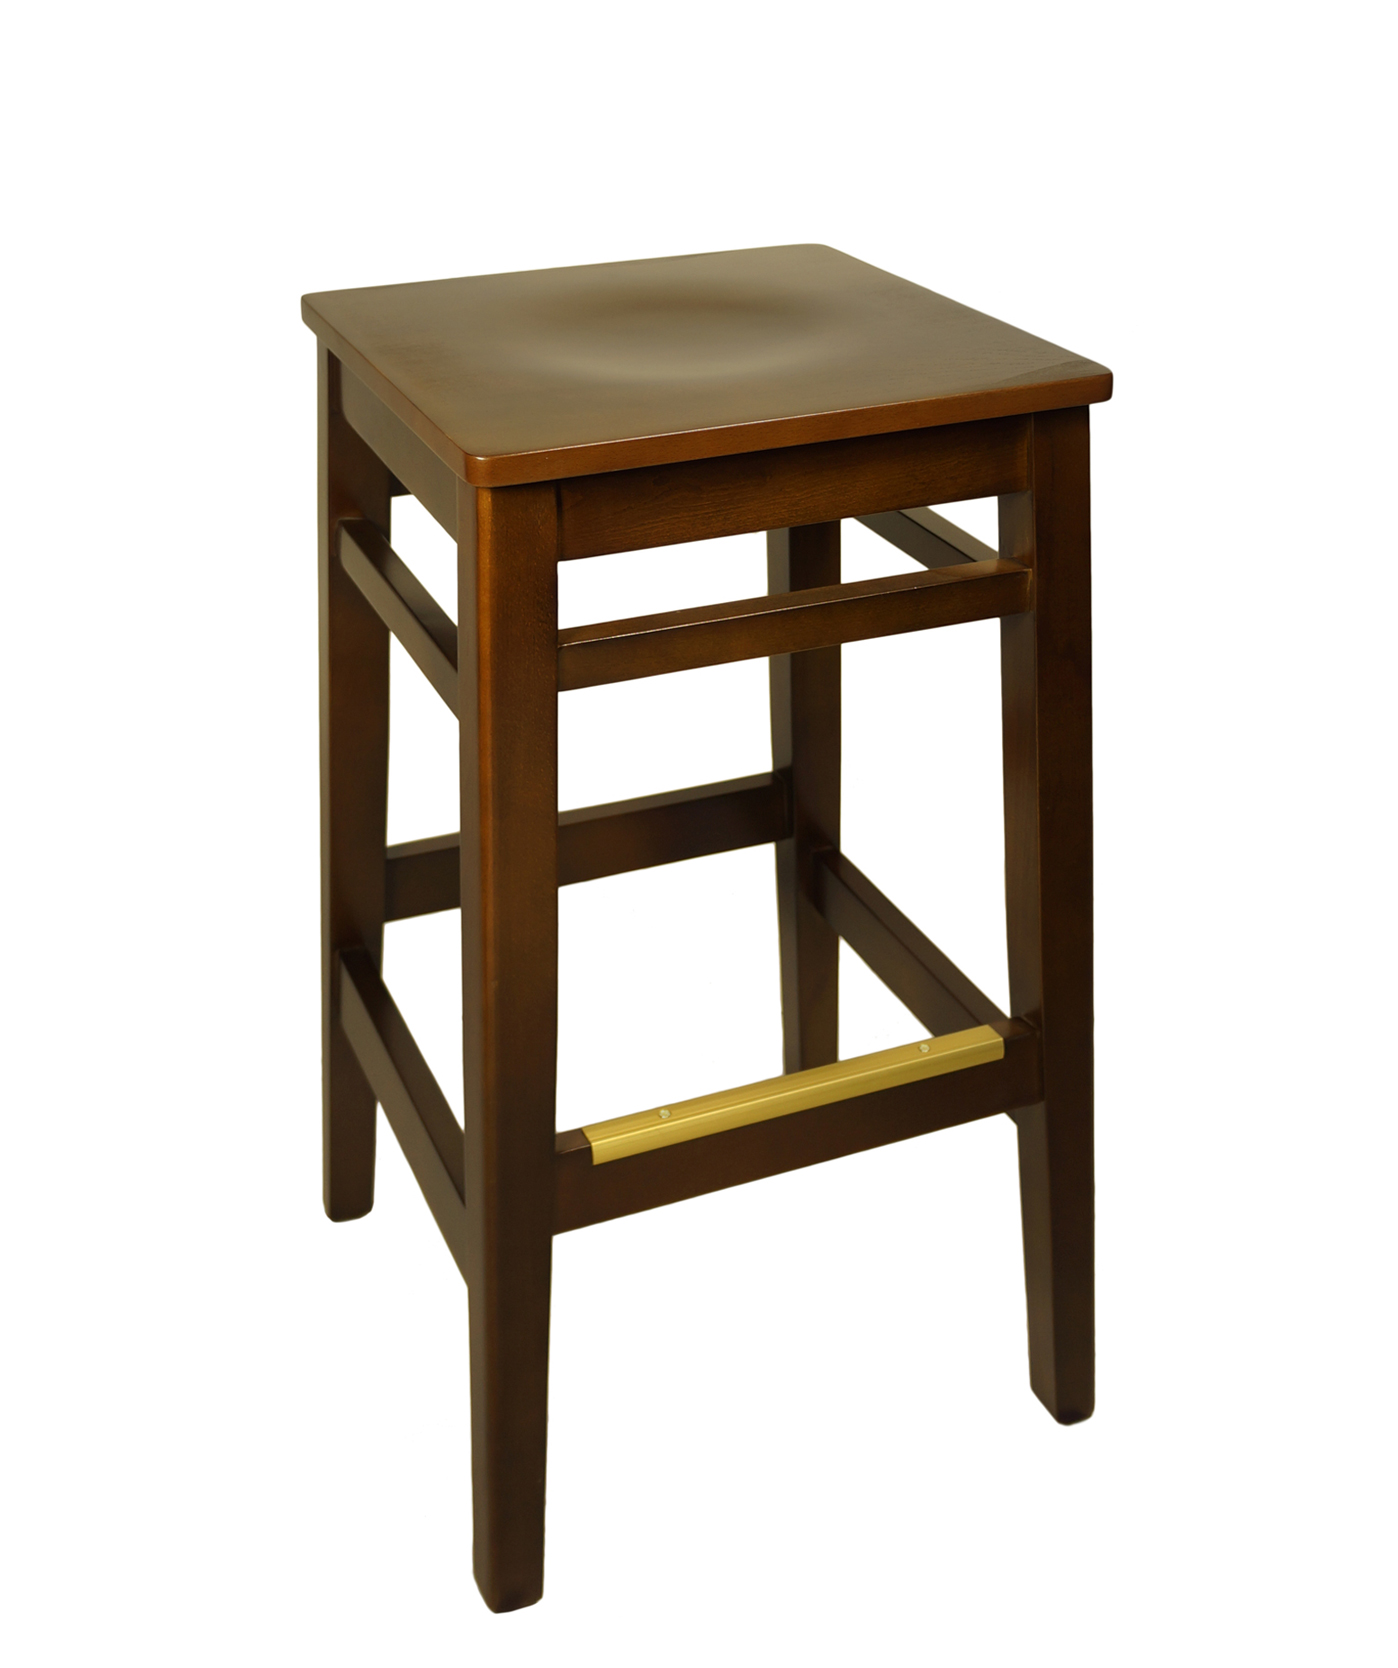 Backless Wood Frame Square Seat Stool